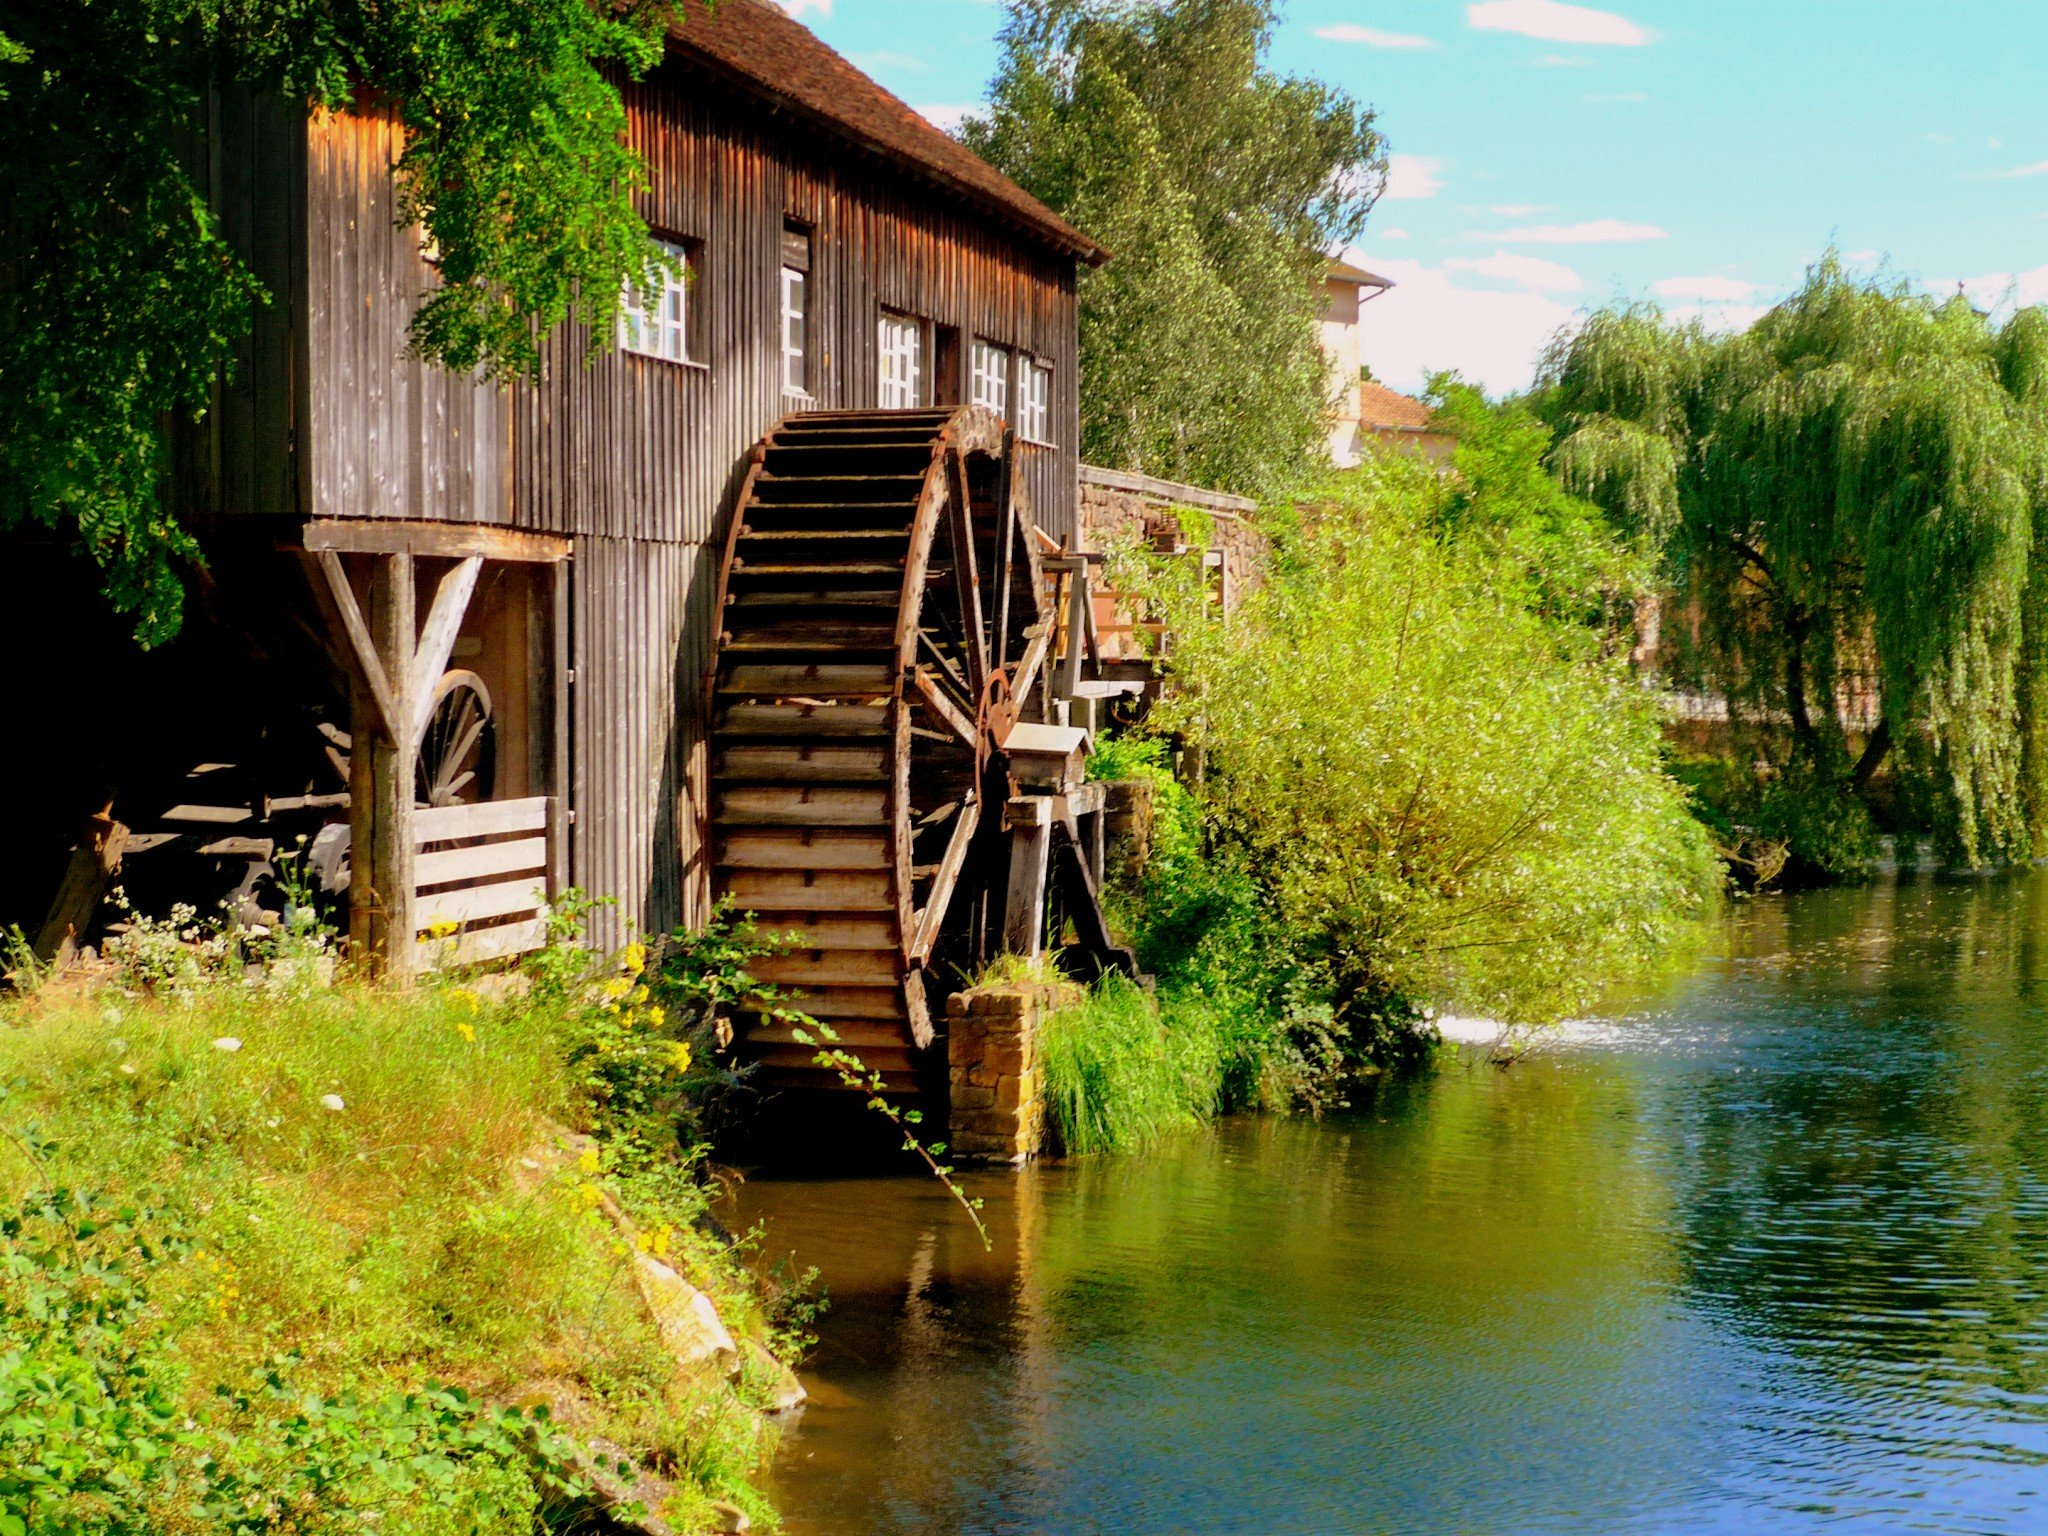 Watermill at the Ecomusée d'Alsace © French Moments